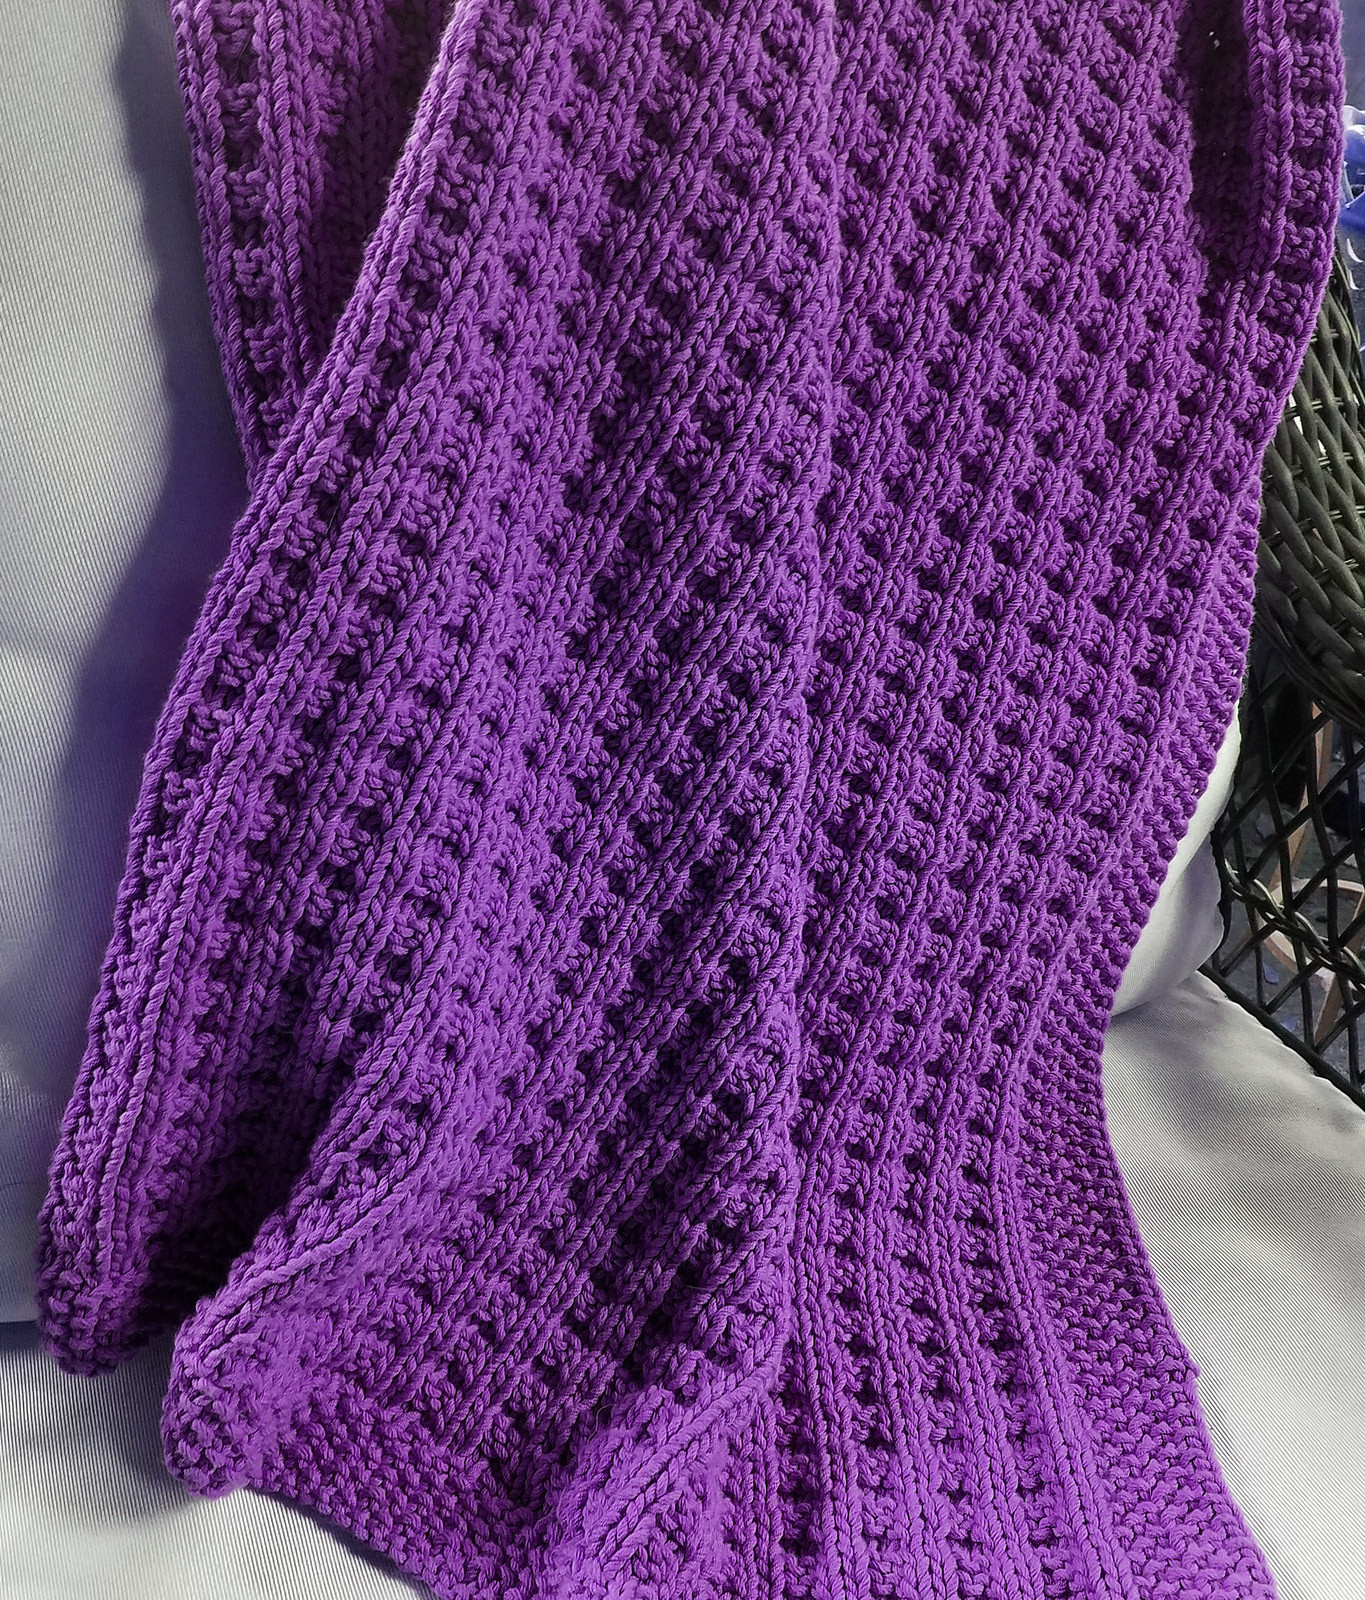 Inspirational Quick Baby Blanket Knitting Patterns Free Knitting Patterns for Throws Of Brilliant 46 Images Free Knitting Patterns for Throws